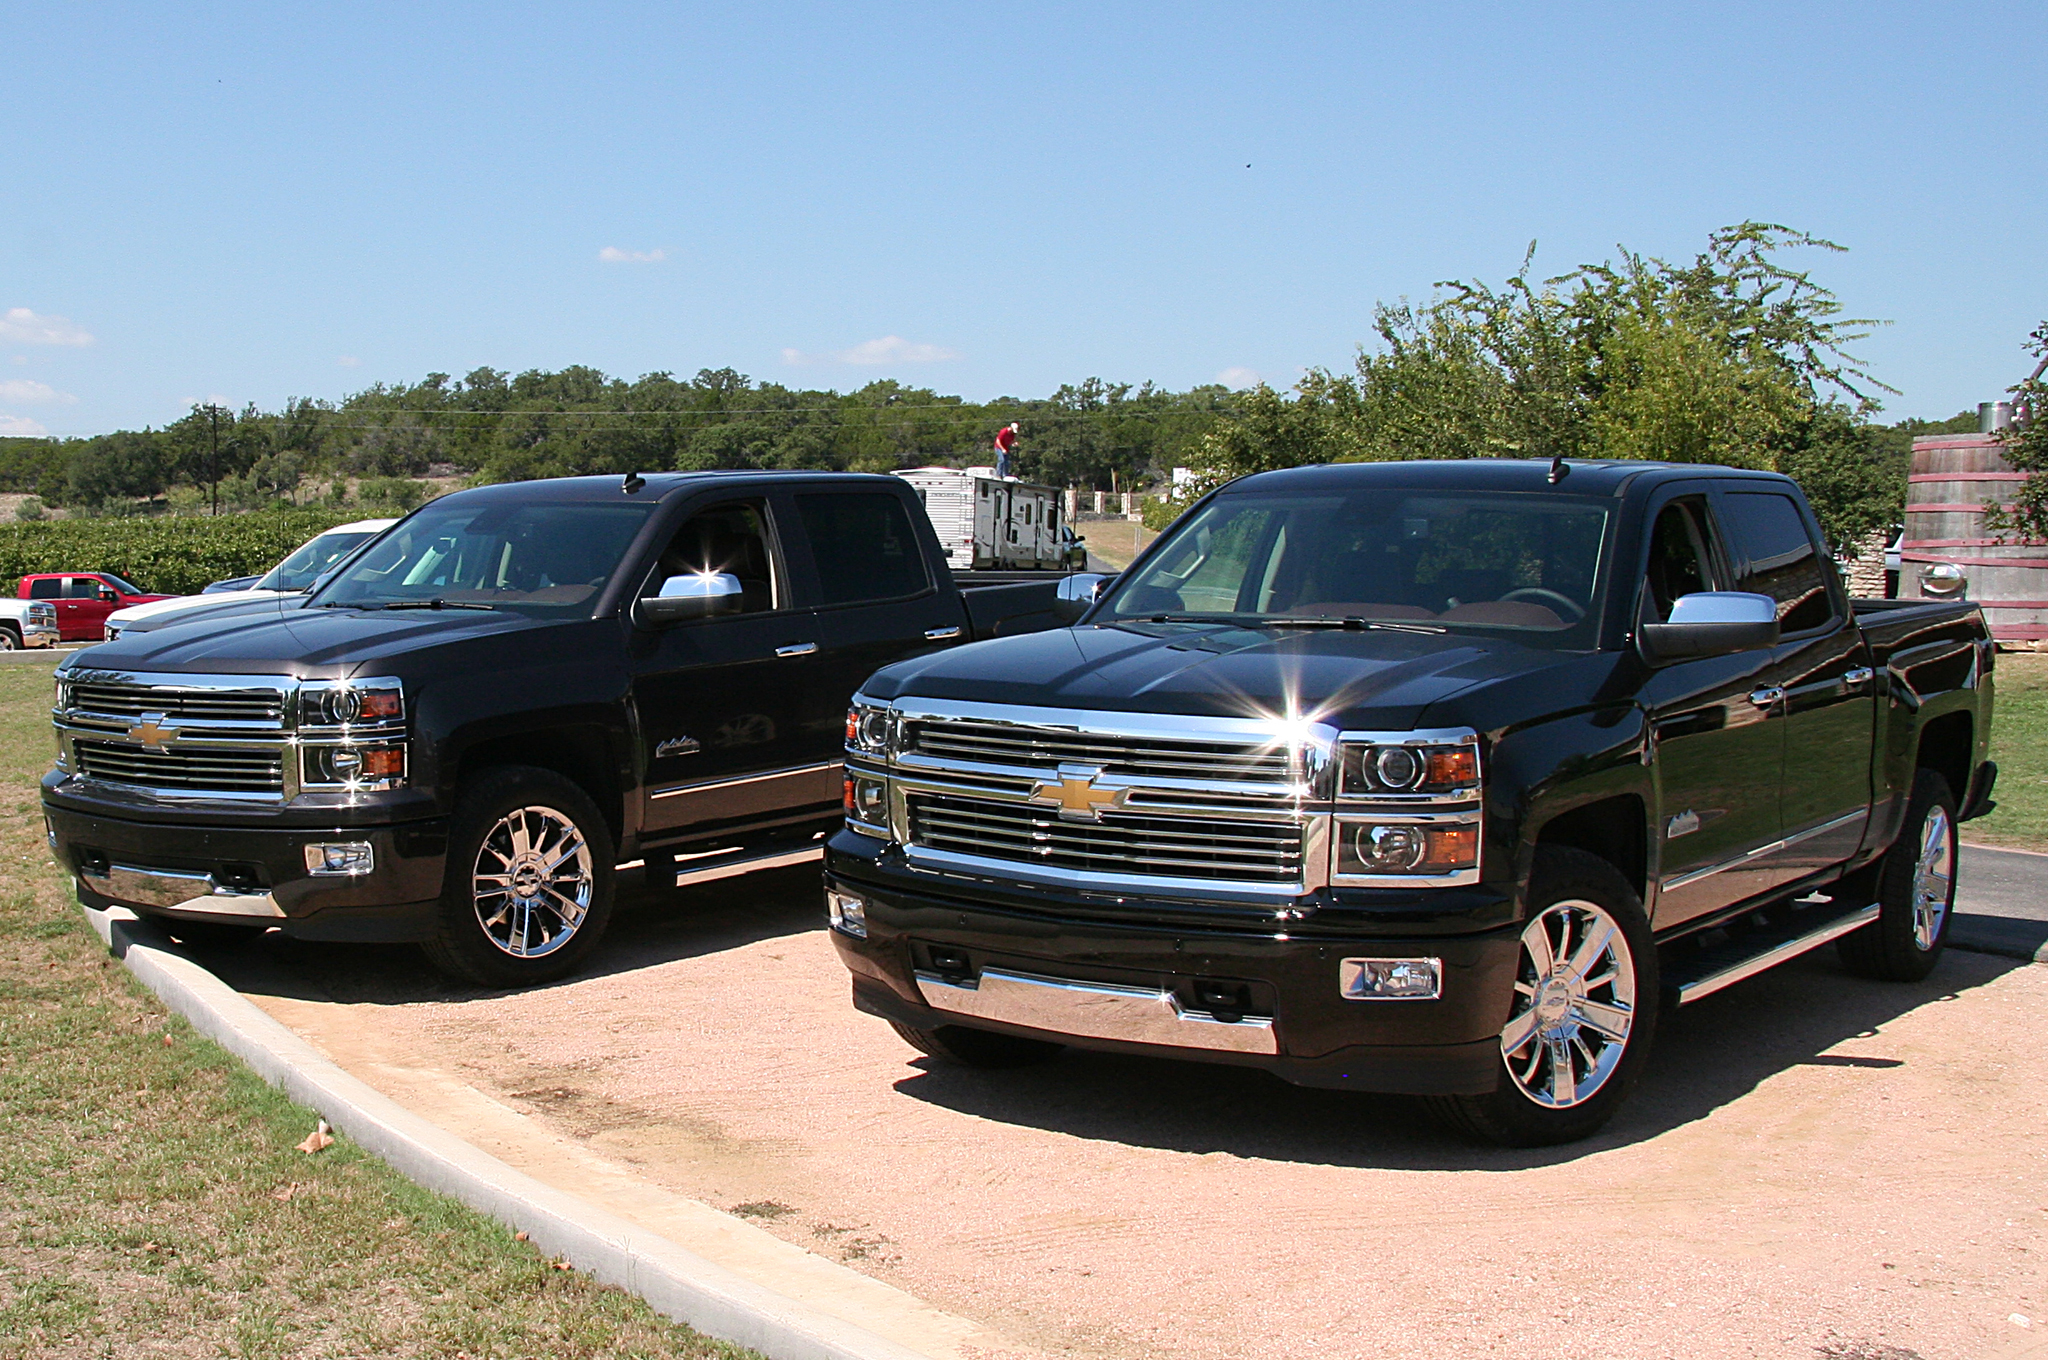 2014 chevrolet silverado 1500 information and photos zombiedrive. Cars Review. Best American Auto & Cars Review